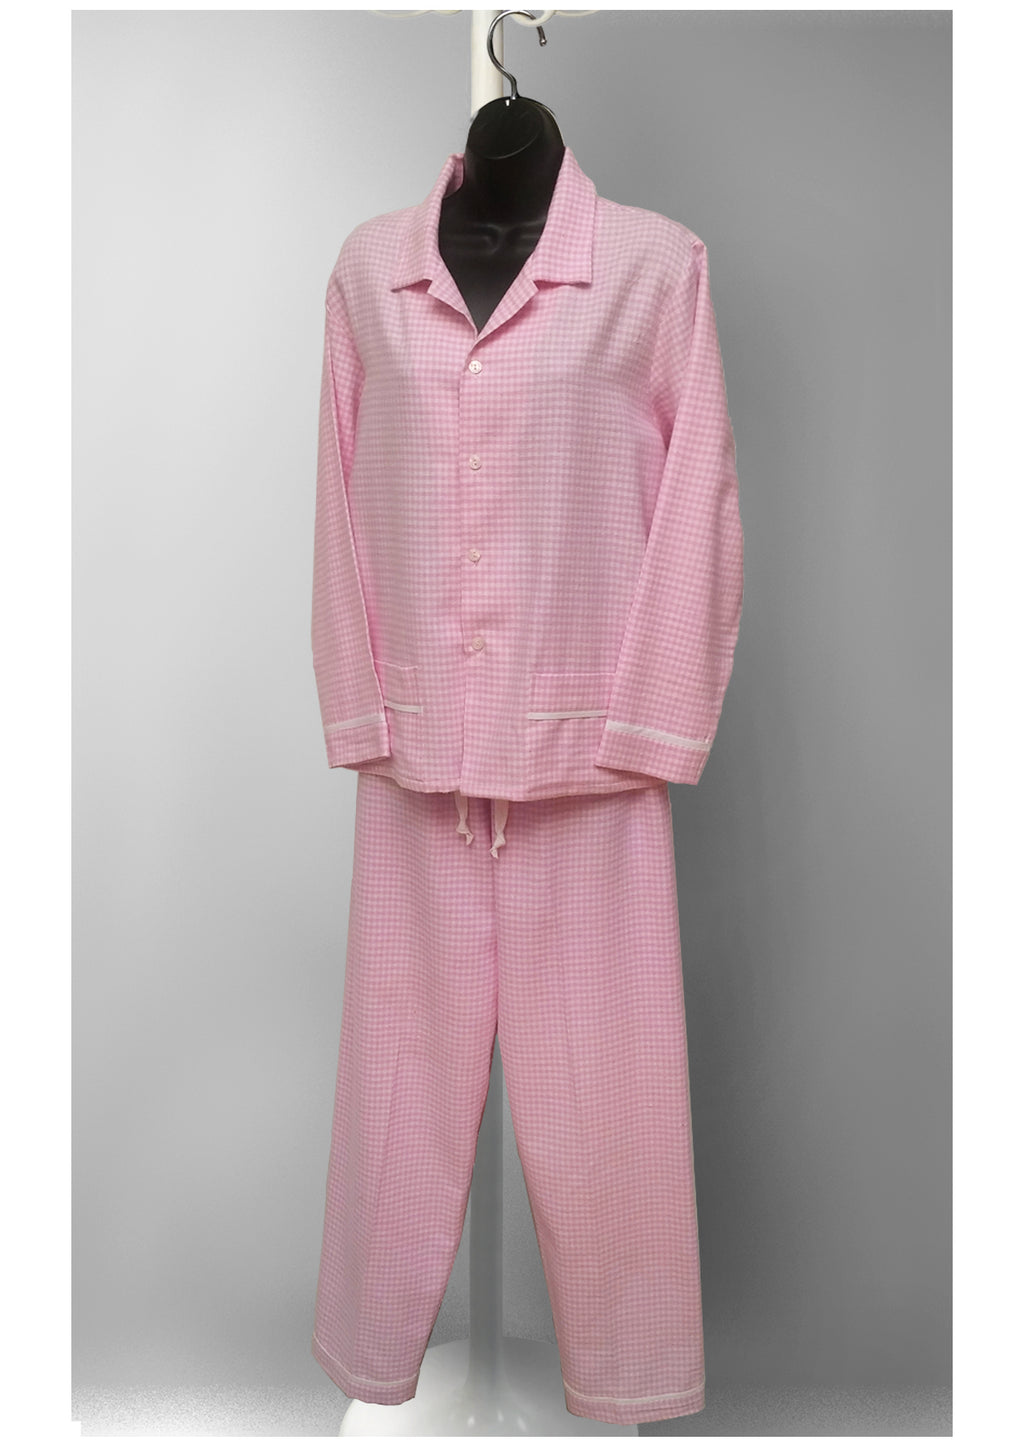 39905 Flannel printed classic PJ Set - (Pink checks SOLD-OUT) -final sale-no returns